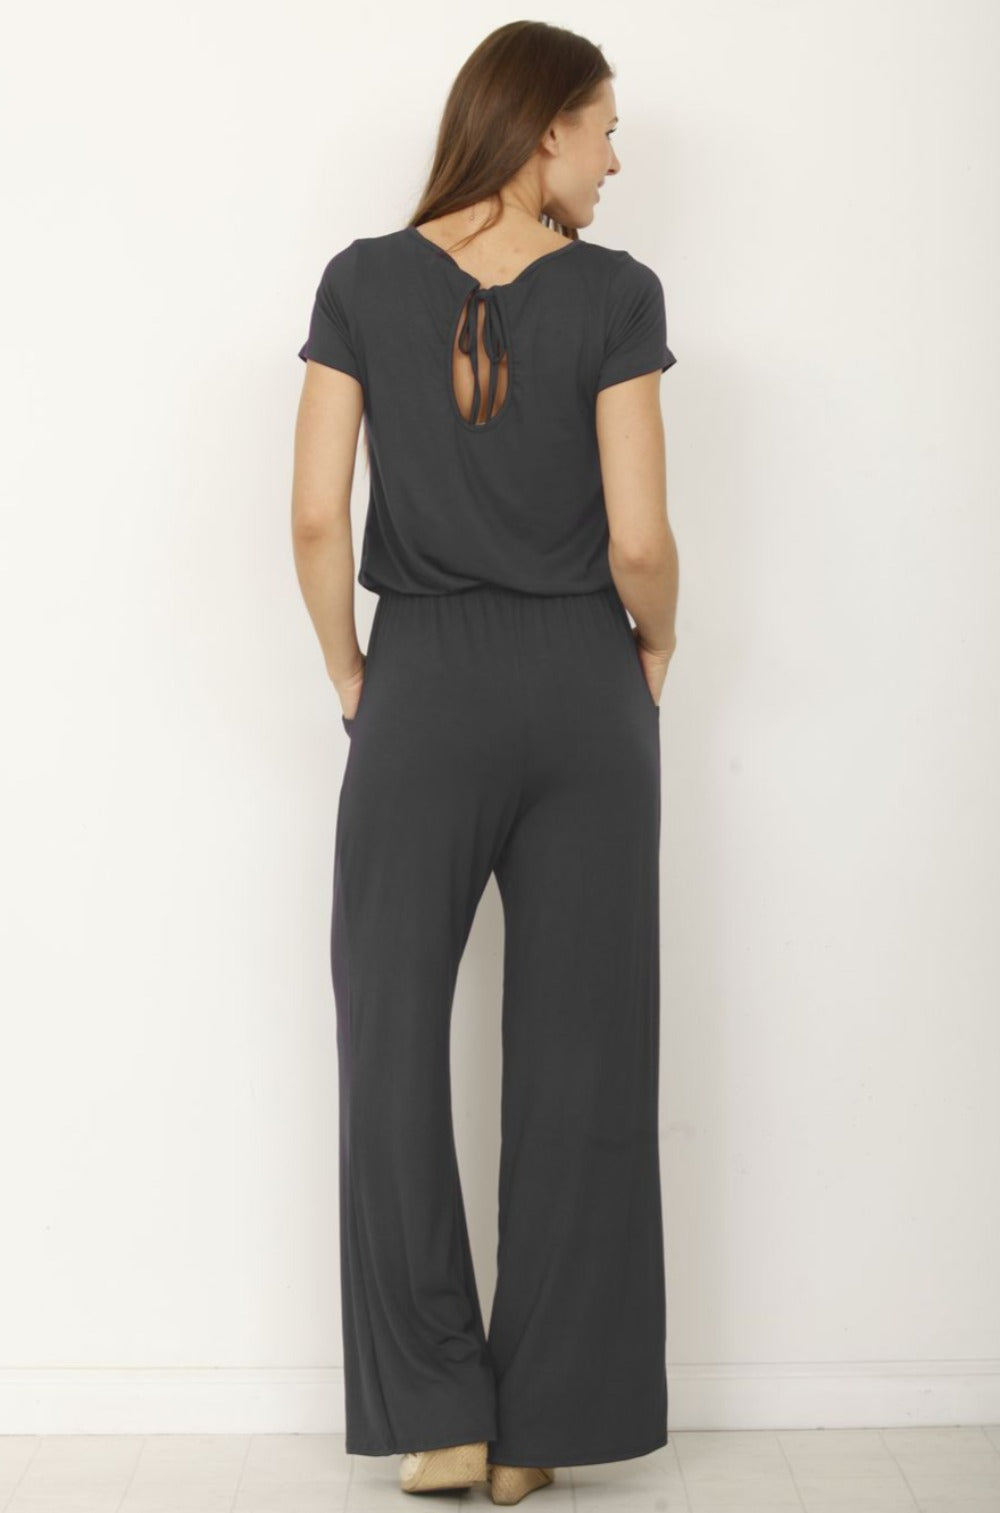 Solid Charcoal Short Sleeve Jumpsuit